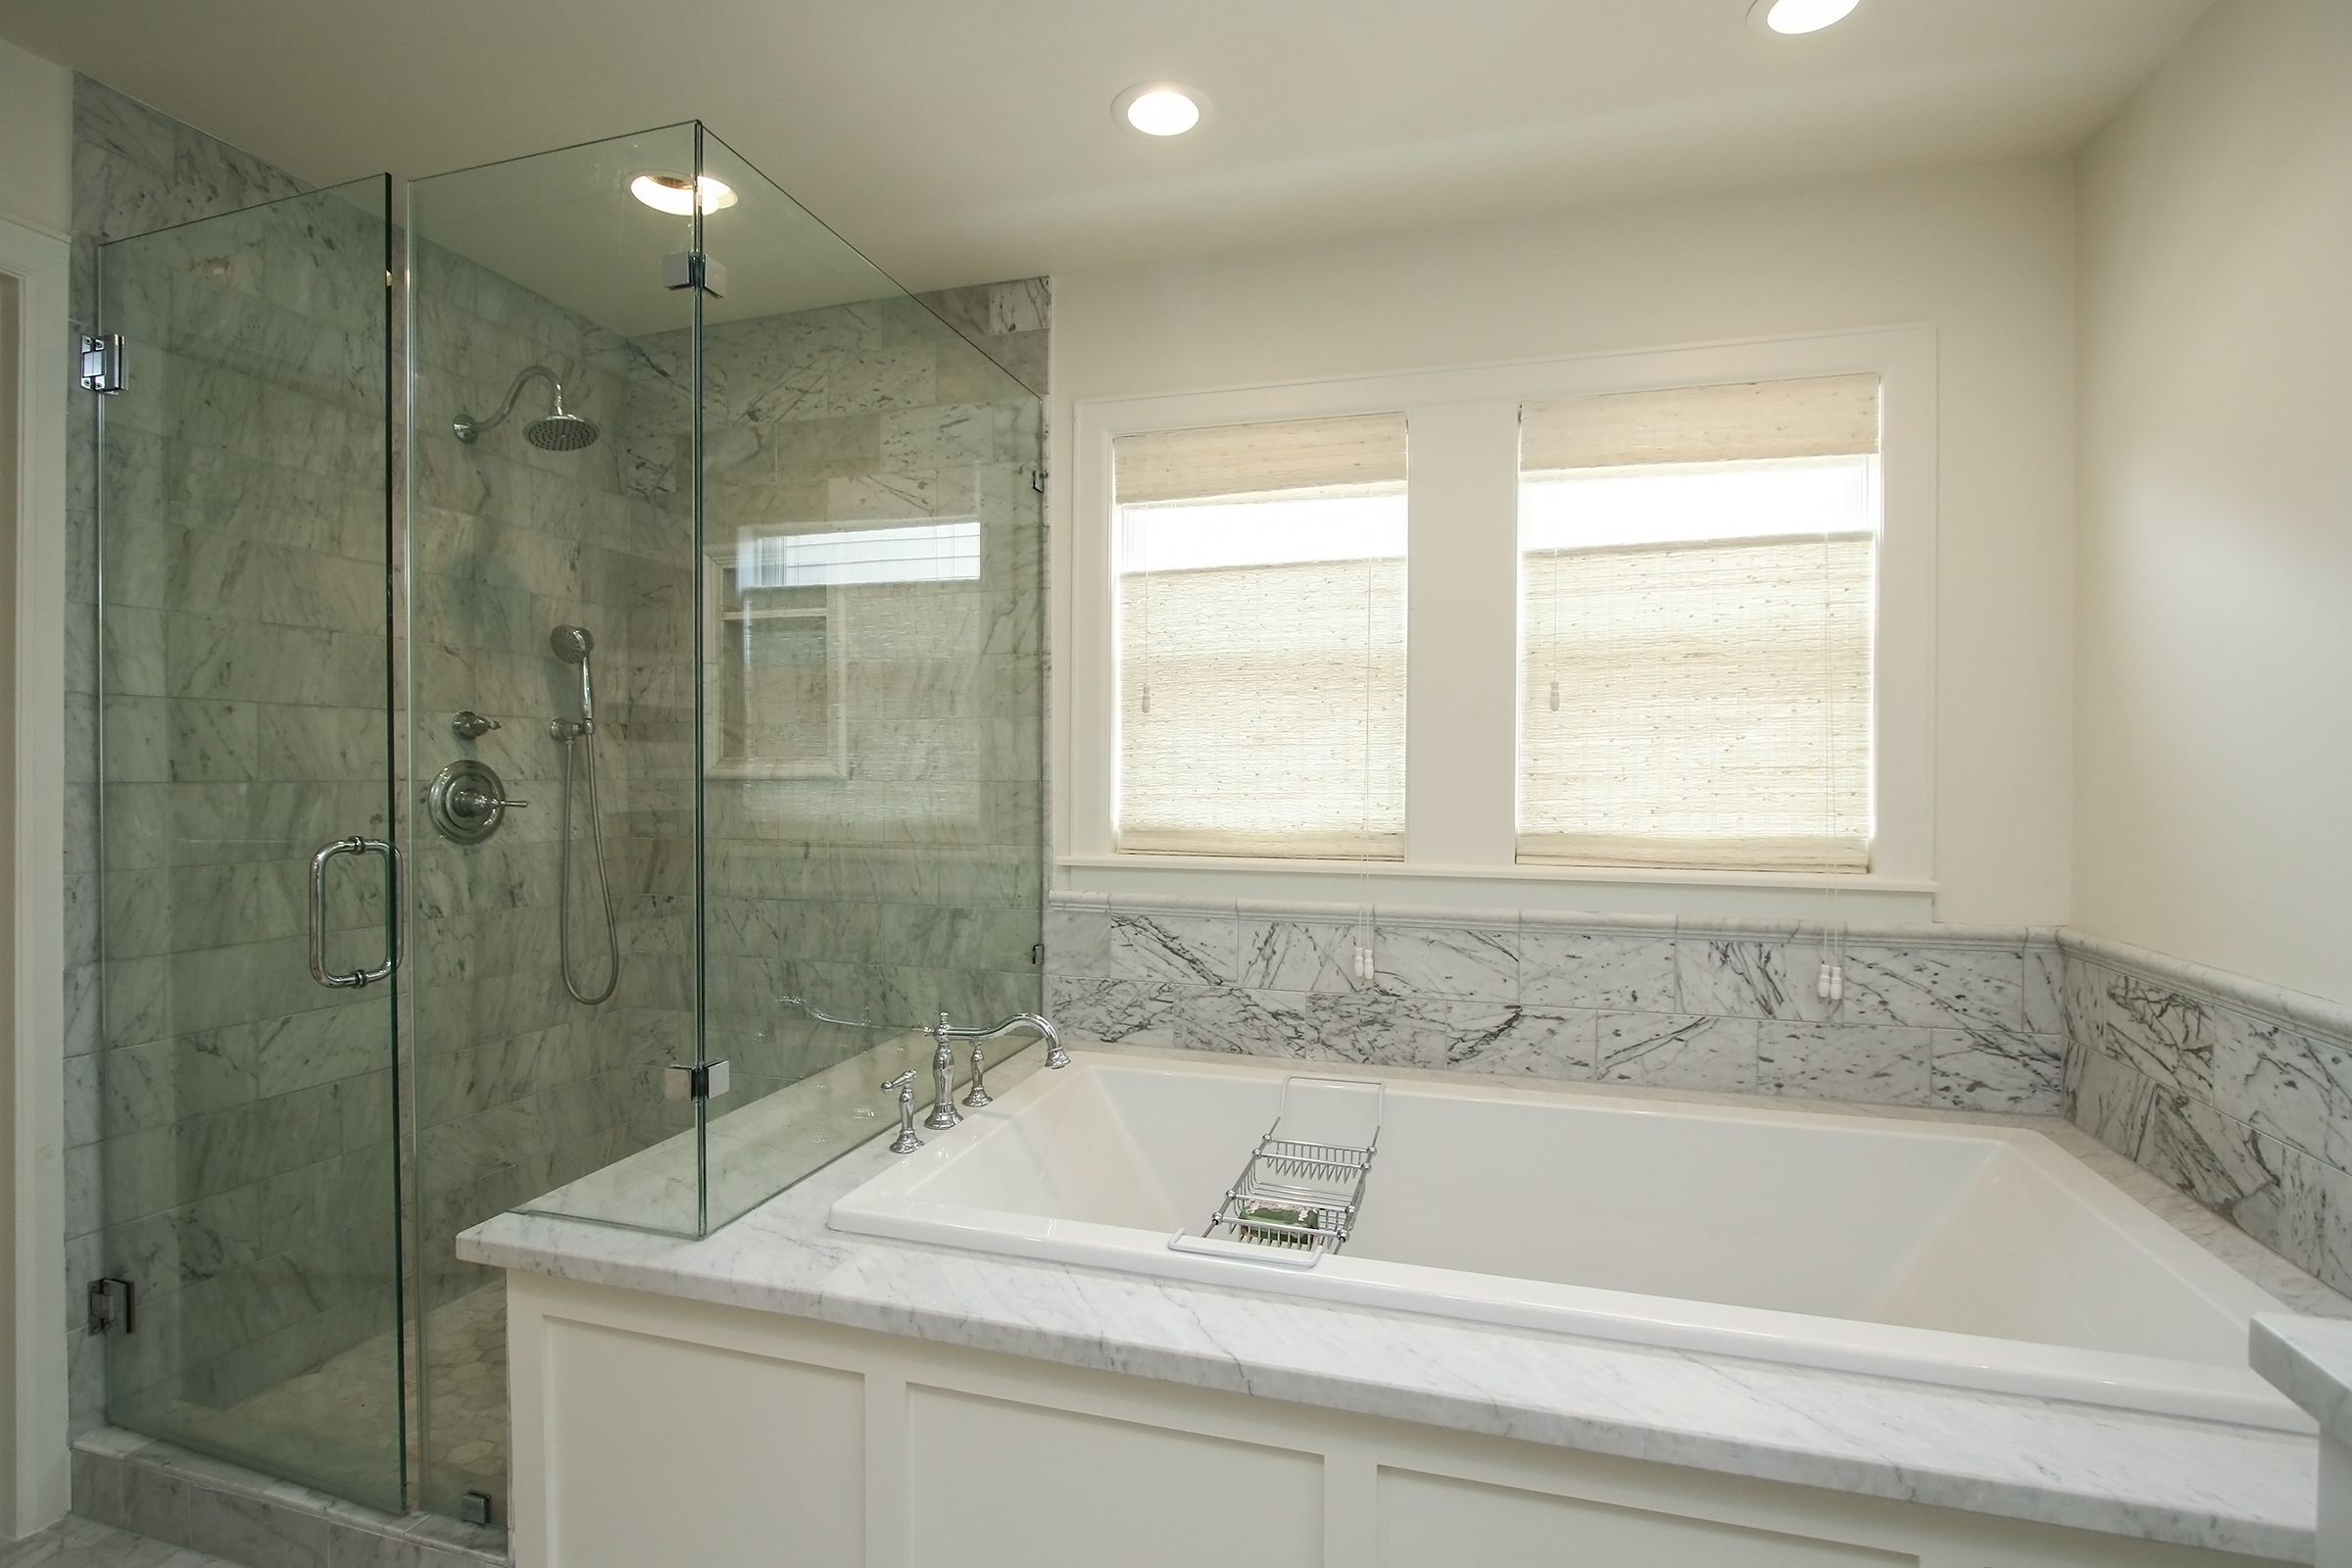 ROH Second story tub